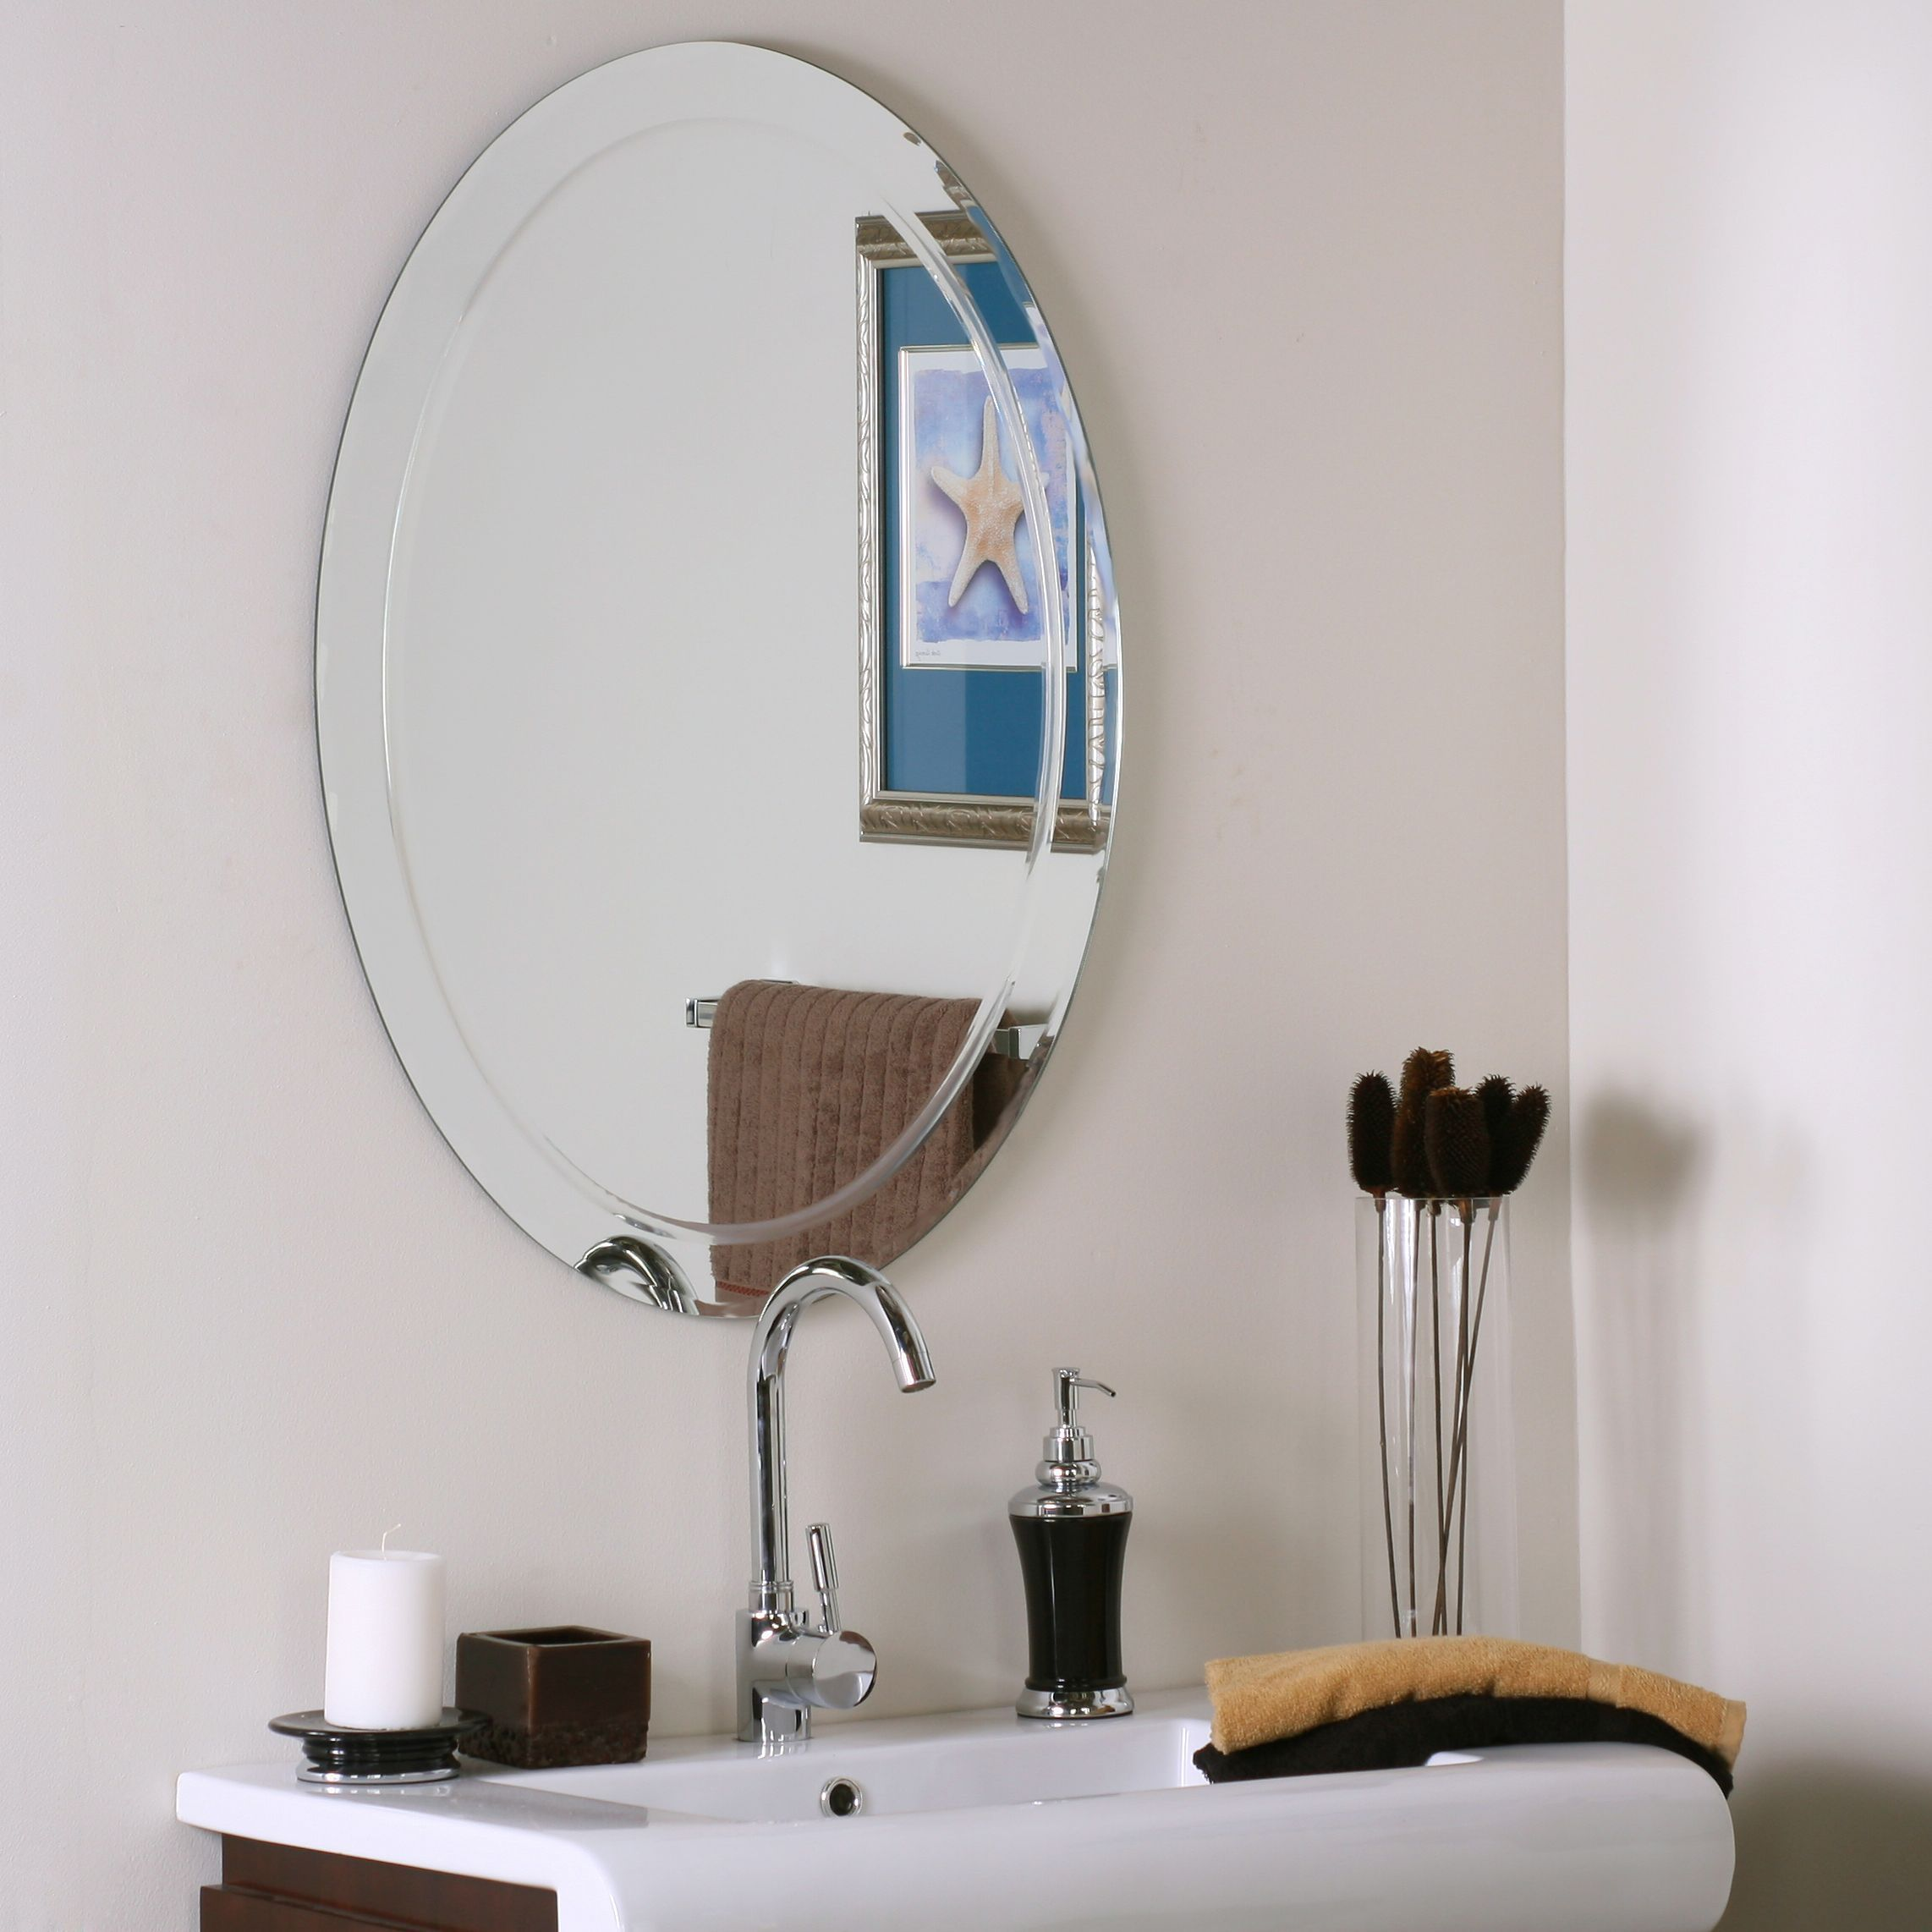 Add a touch of style to your bathroom with this Alden frameless oval ...